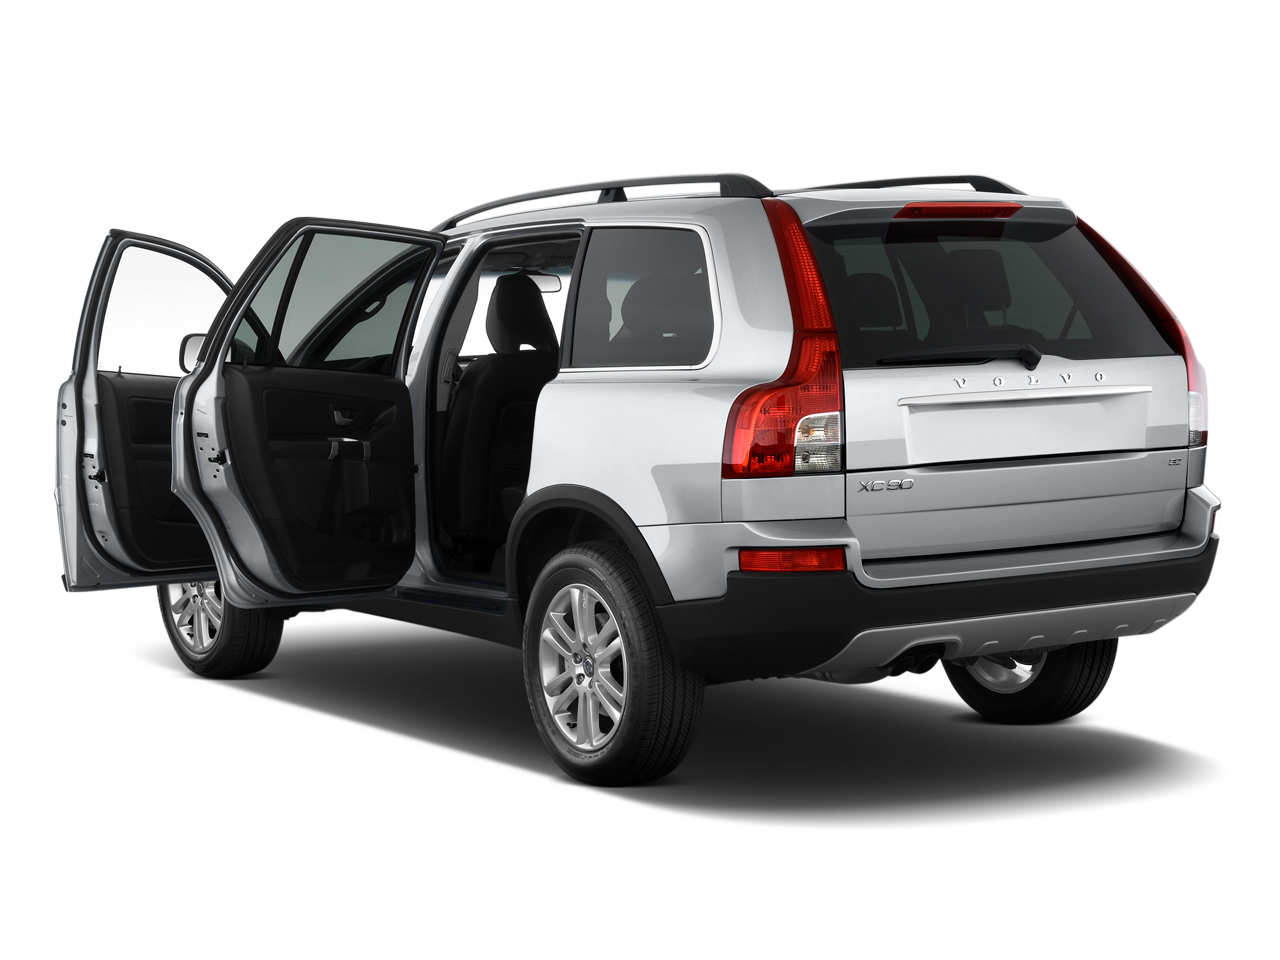 2009 Volvo XC90 AWD - Volvo Crossover SUV Review ...